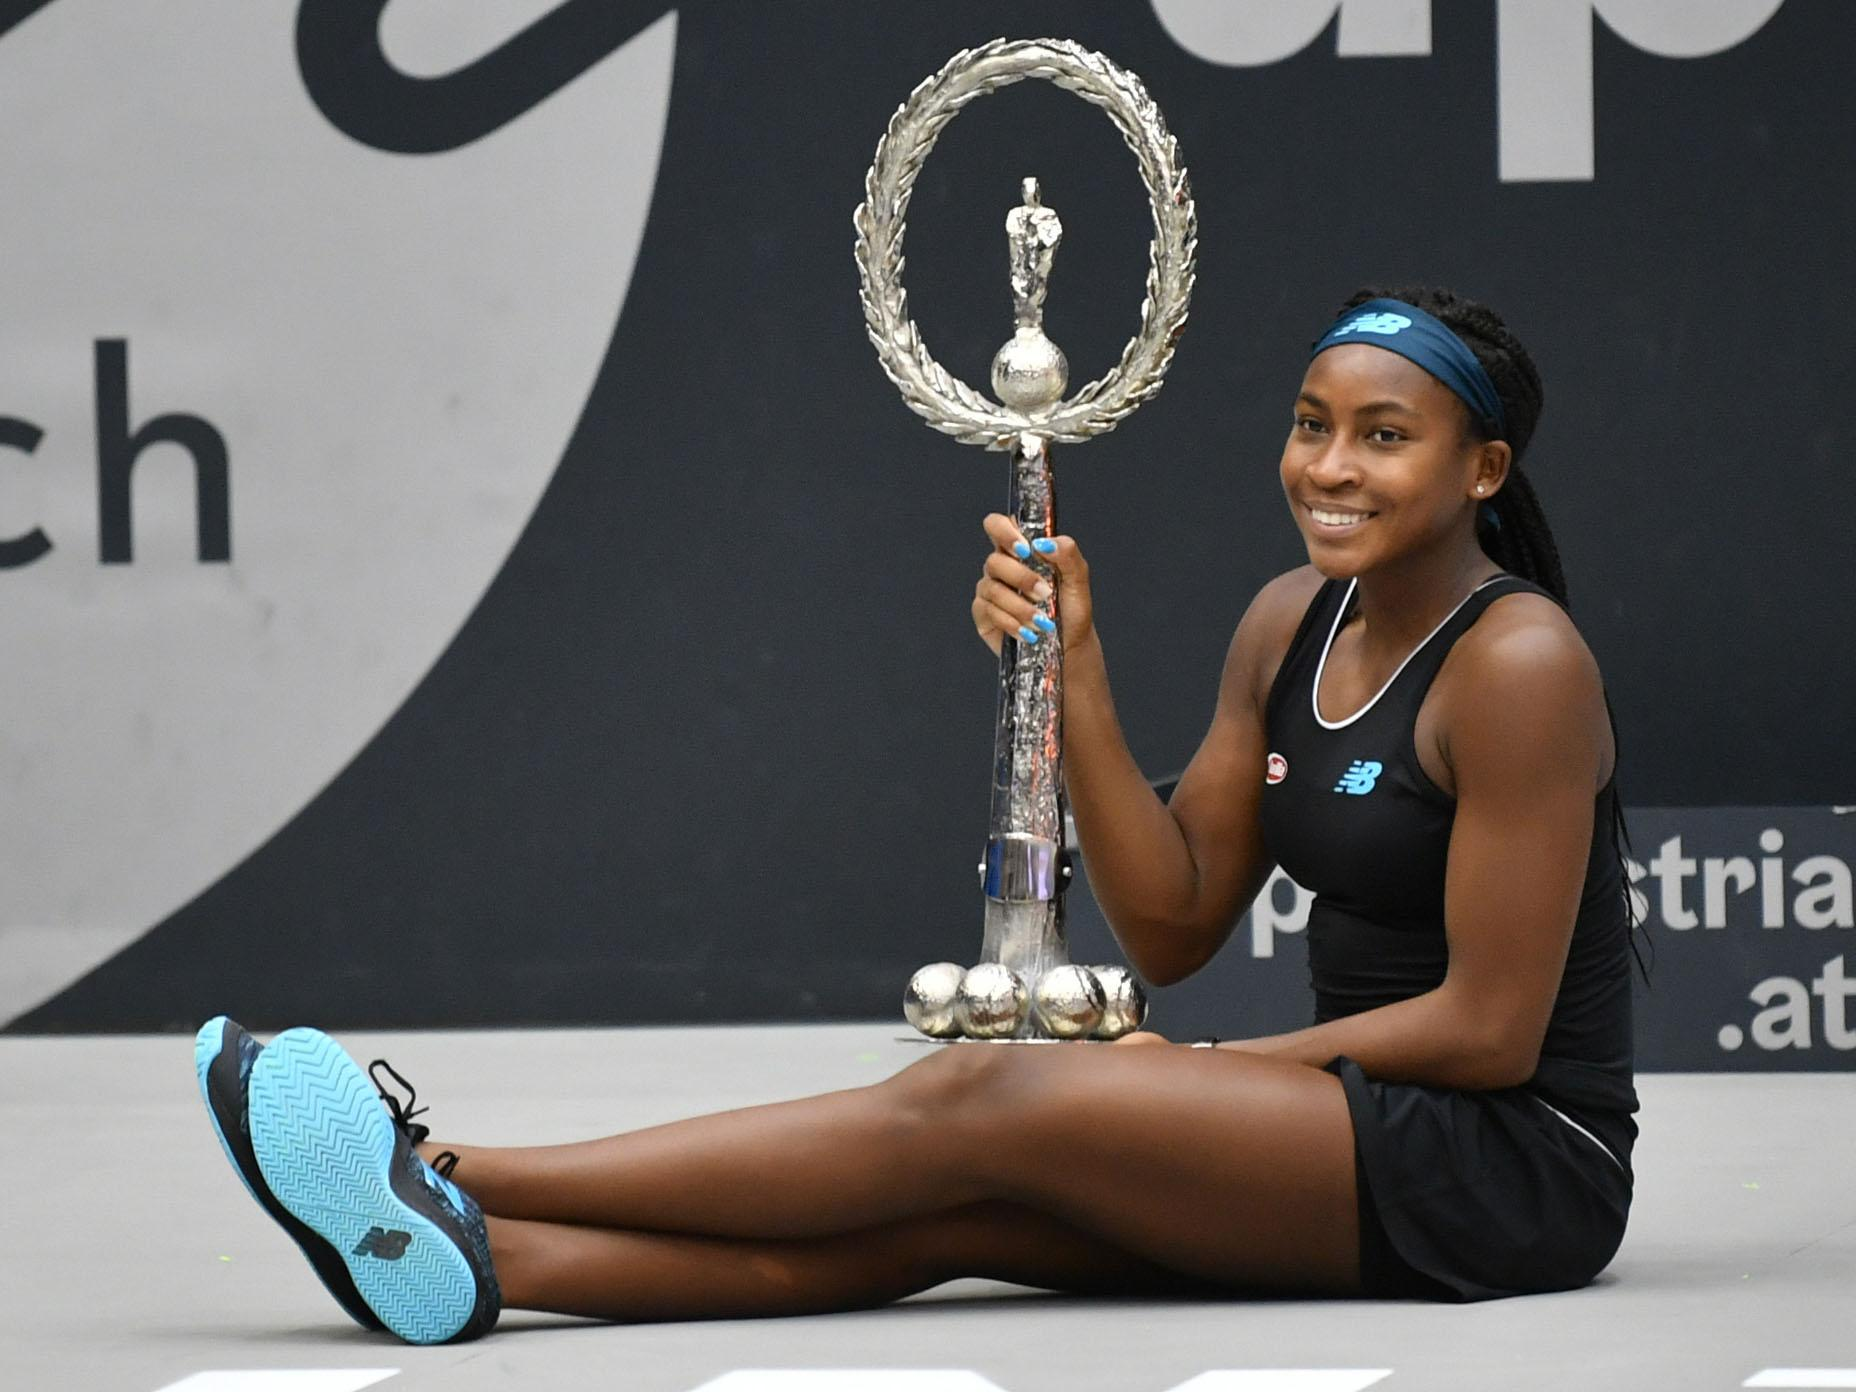 Coco Gauff claims maiden WTA title and becomes youngest tour winner in 42 years